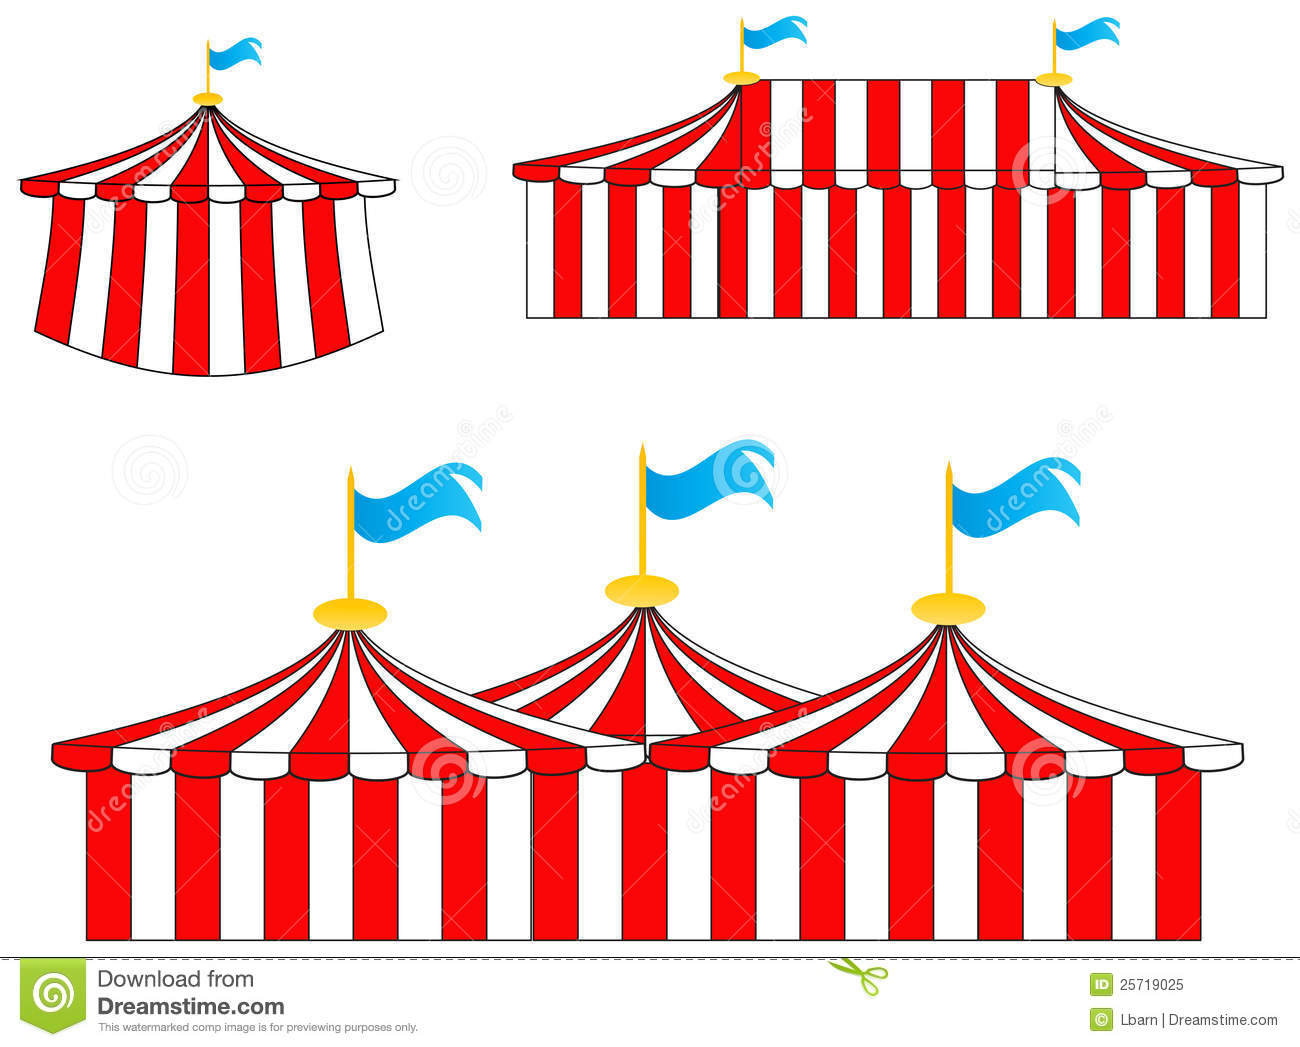 Carnival clipart pink circus tent White And Clipart Free Images